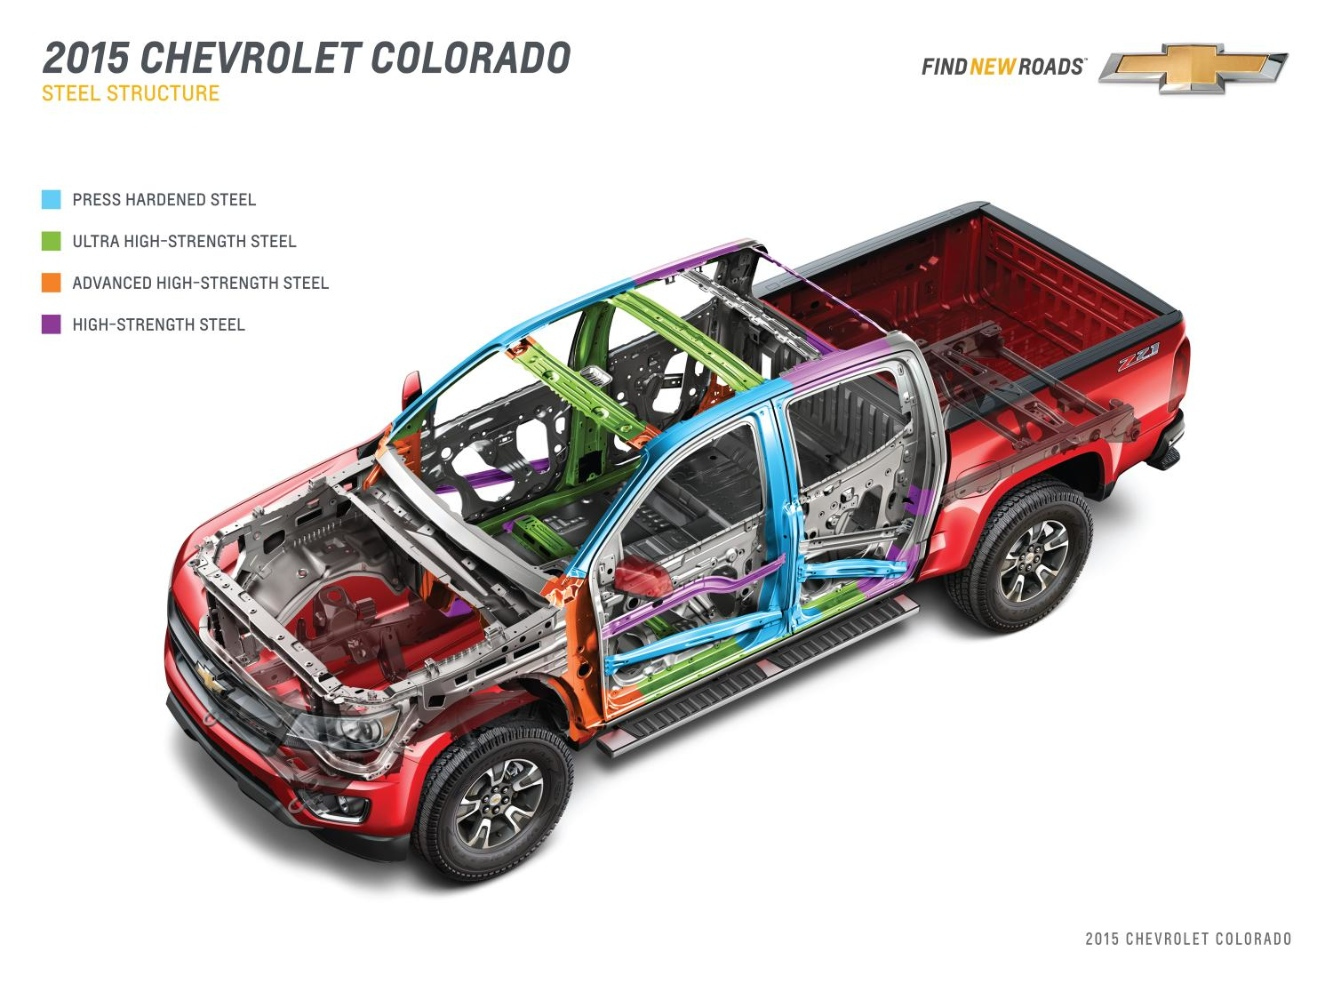 Chevrolet Details 2015 Colorado Engineering, Weight-Loss Program